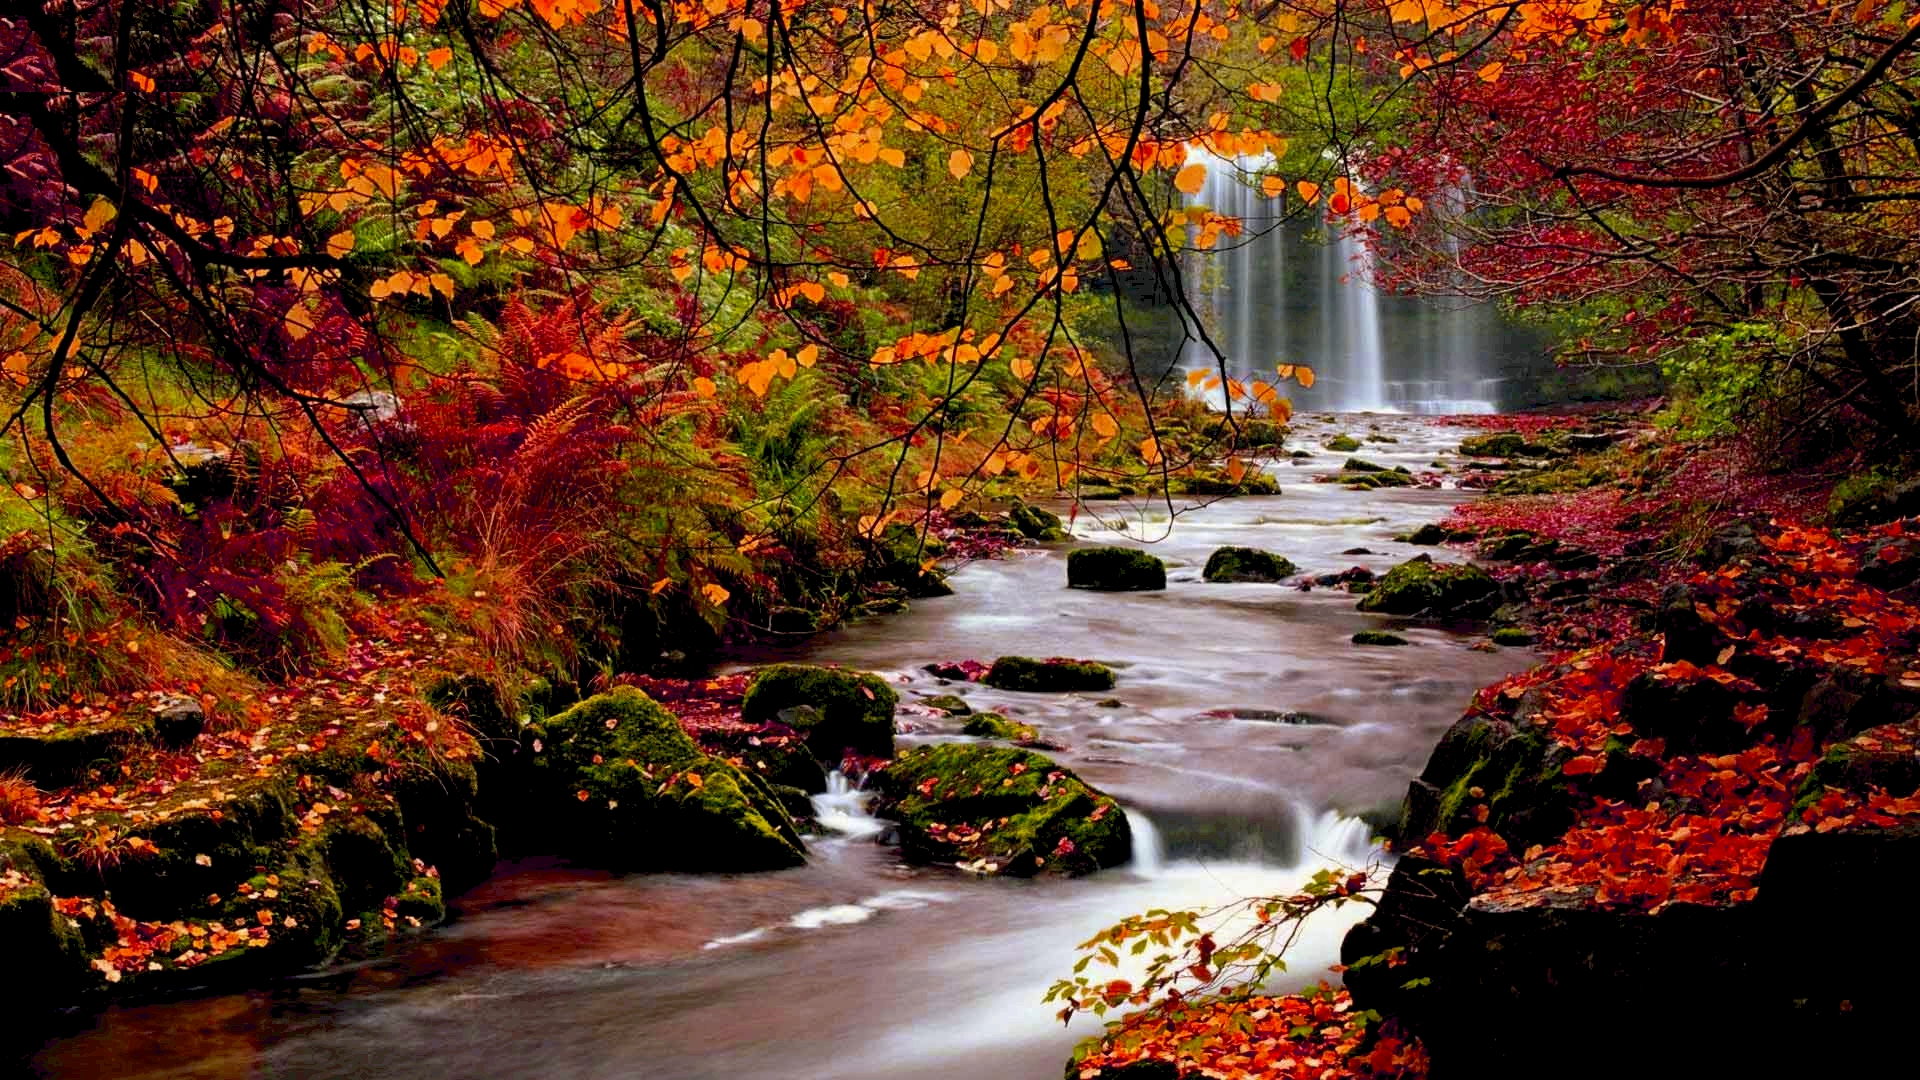 Fall In Love Wallpaper In Hd : Fall Autumn Wallpapers Archives - HD Desktop Wallpapers 4k HD